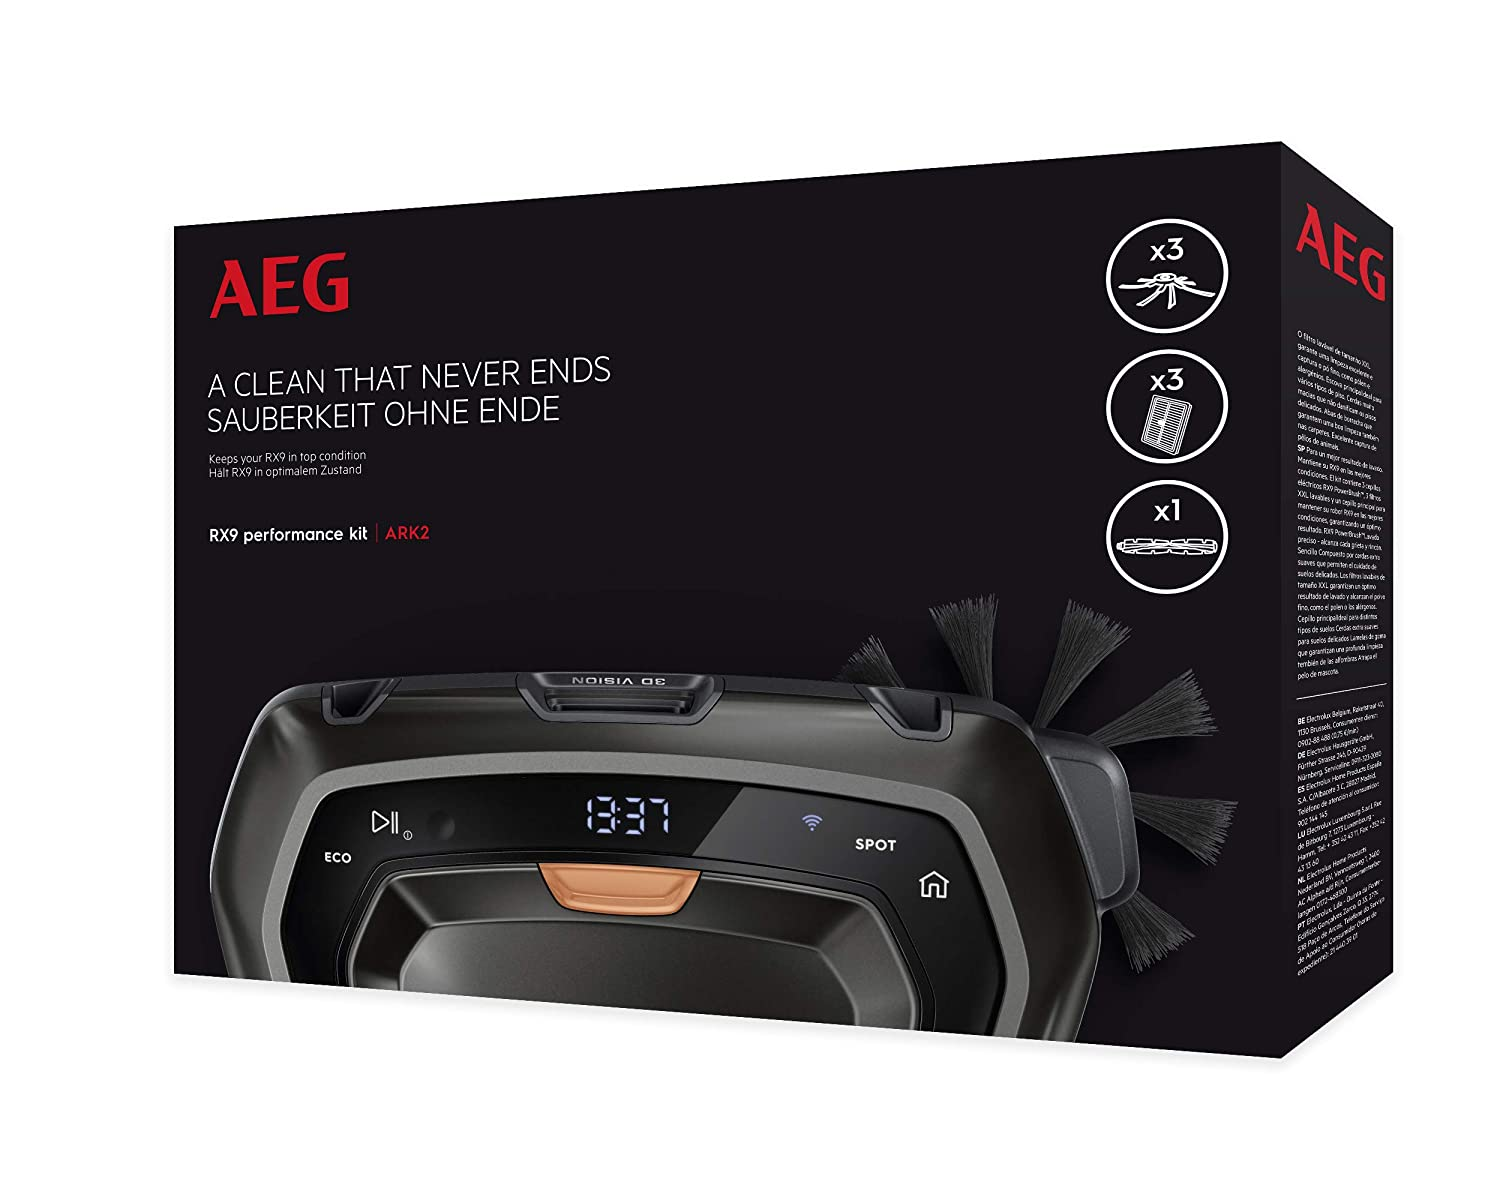 AEG ARK 2 RX9 Performance Kit